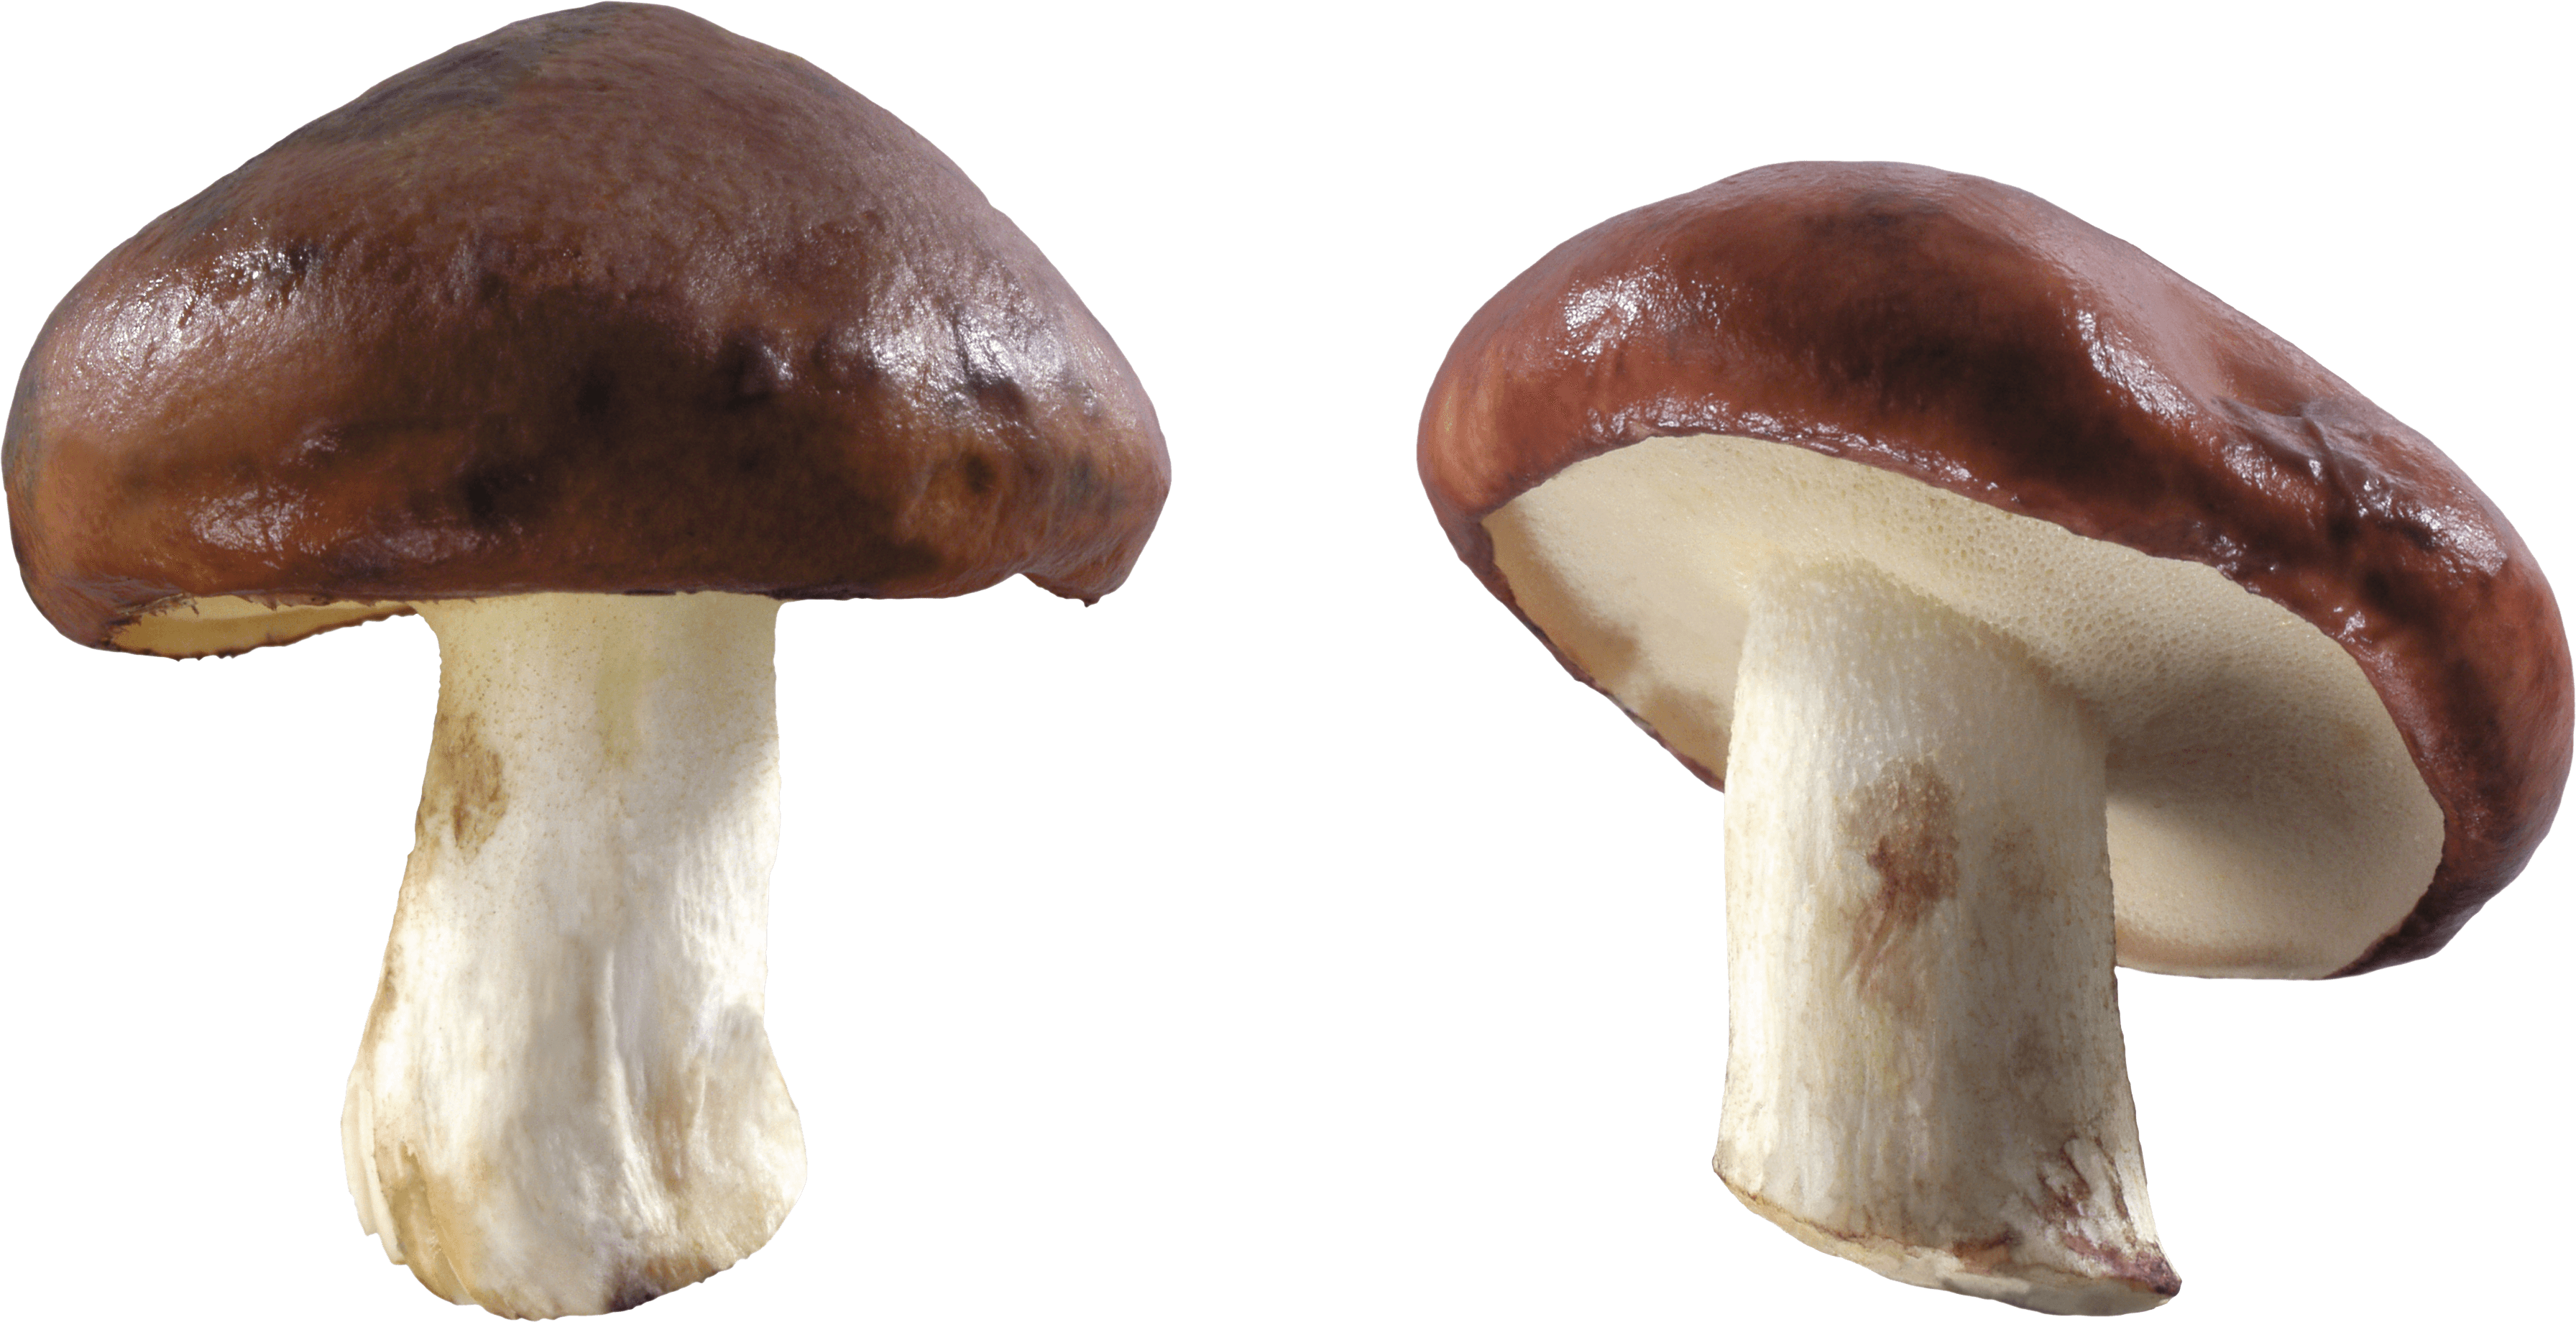 Mushroom Free Download Transparent